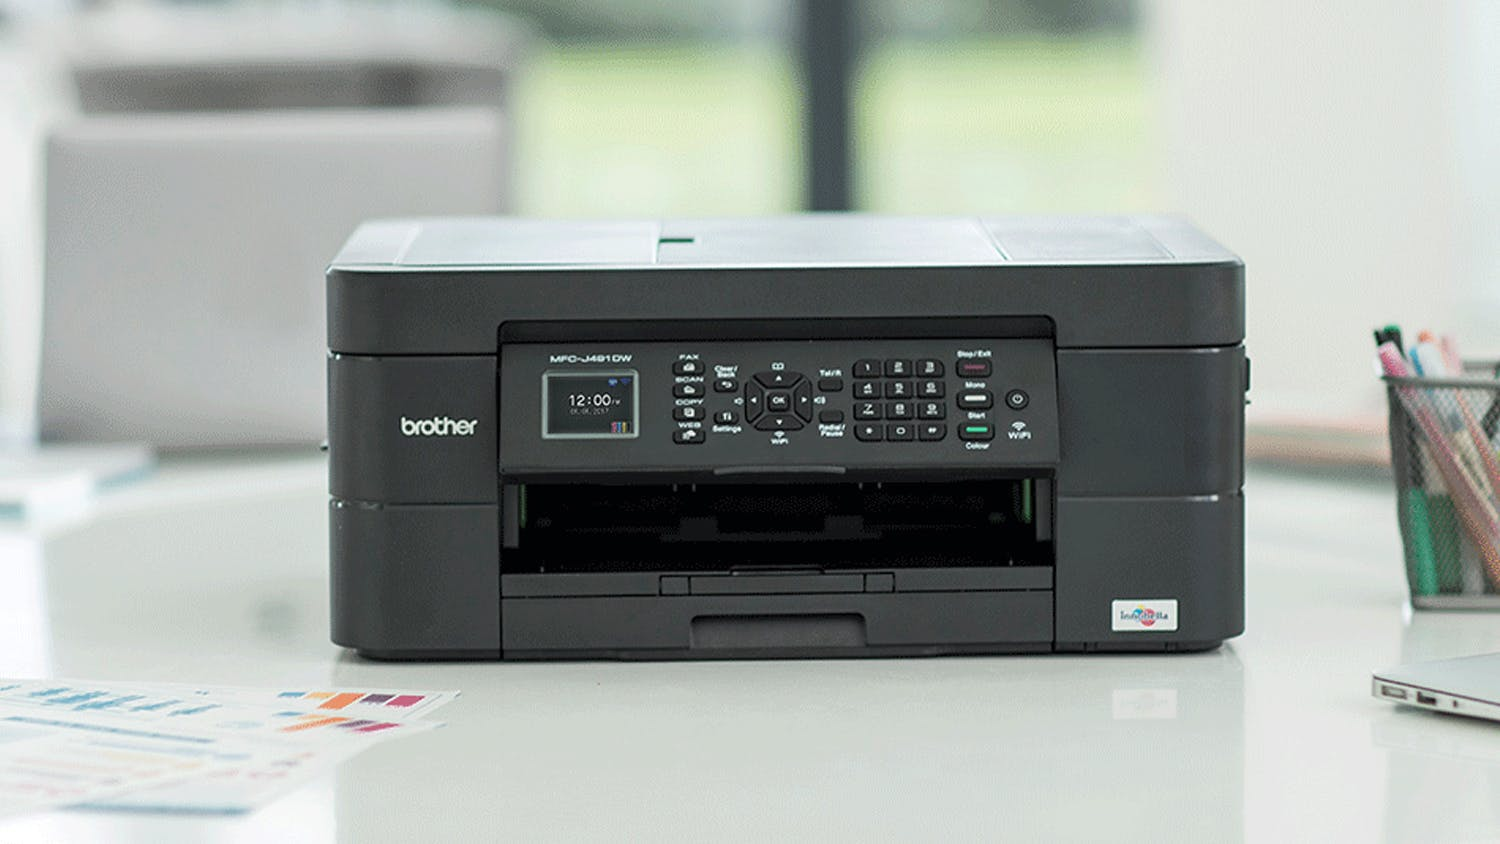 Brother MFCJ491DW All-in-One Printer